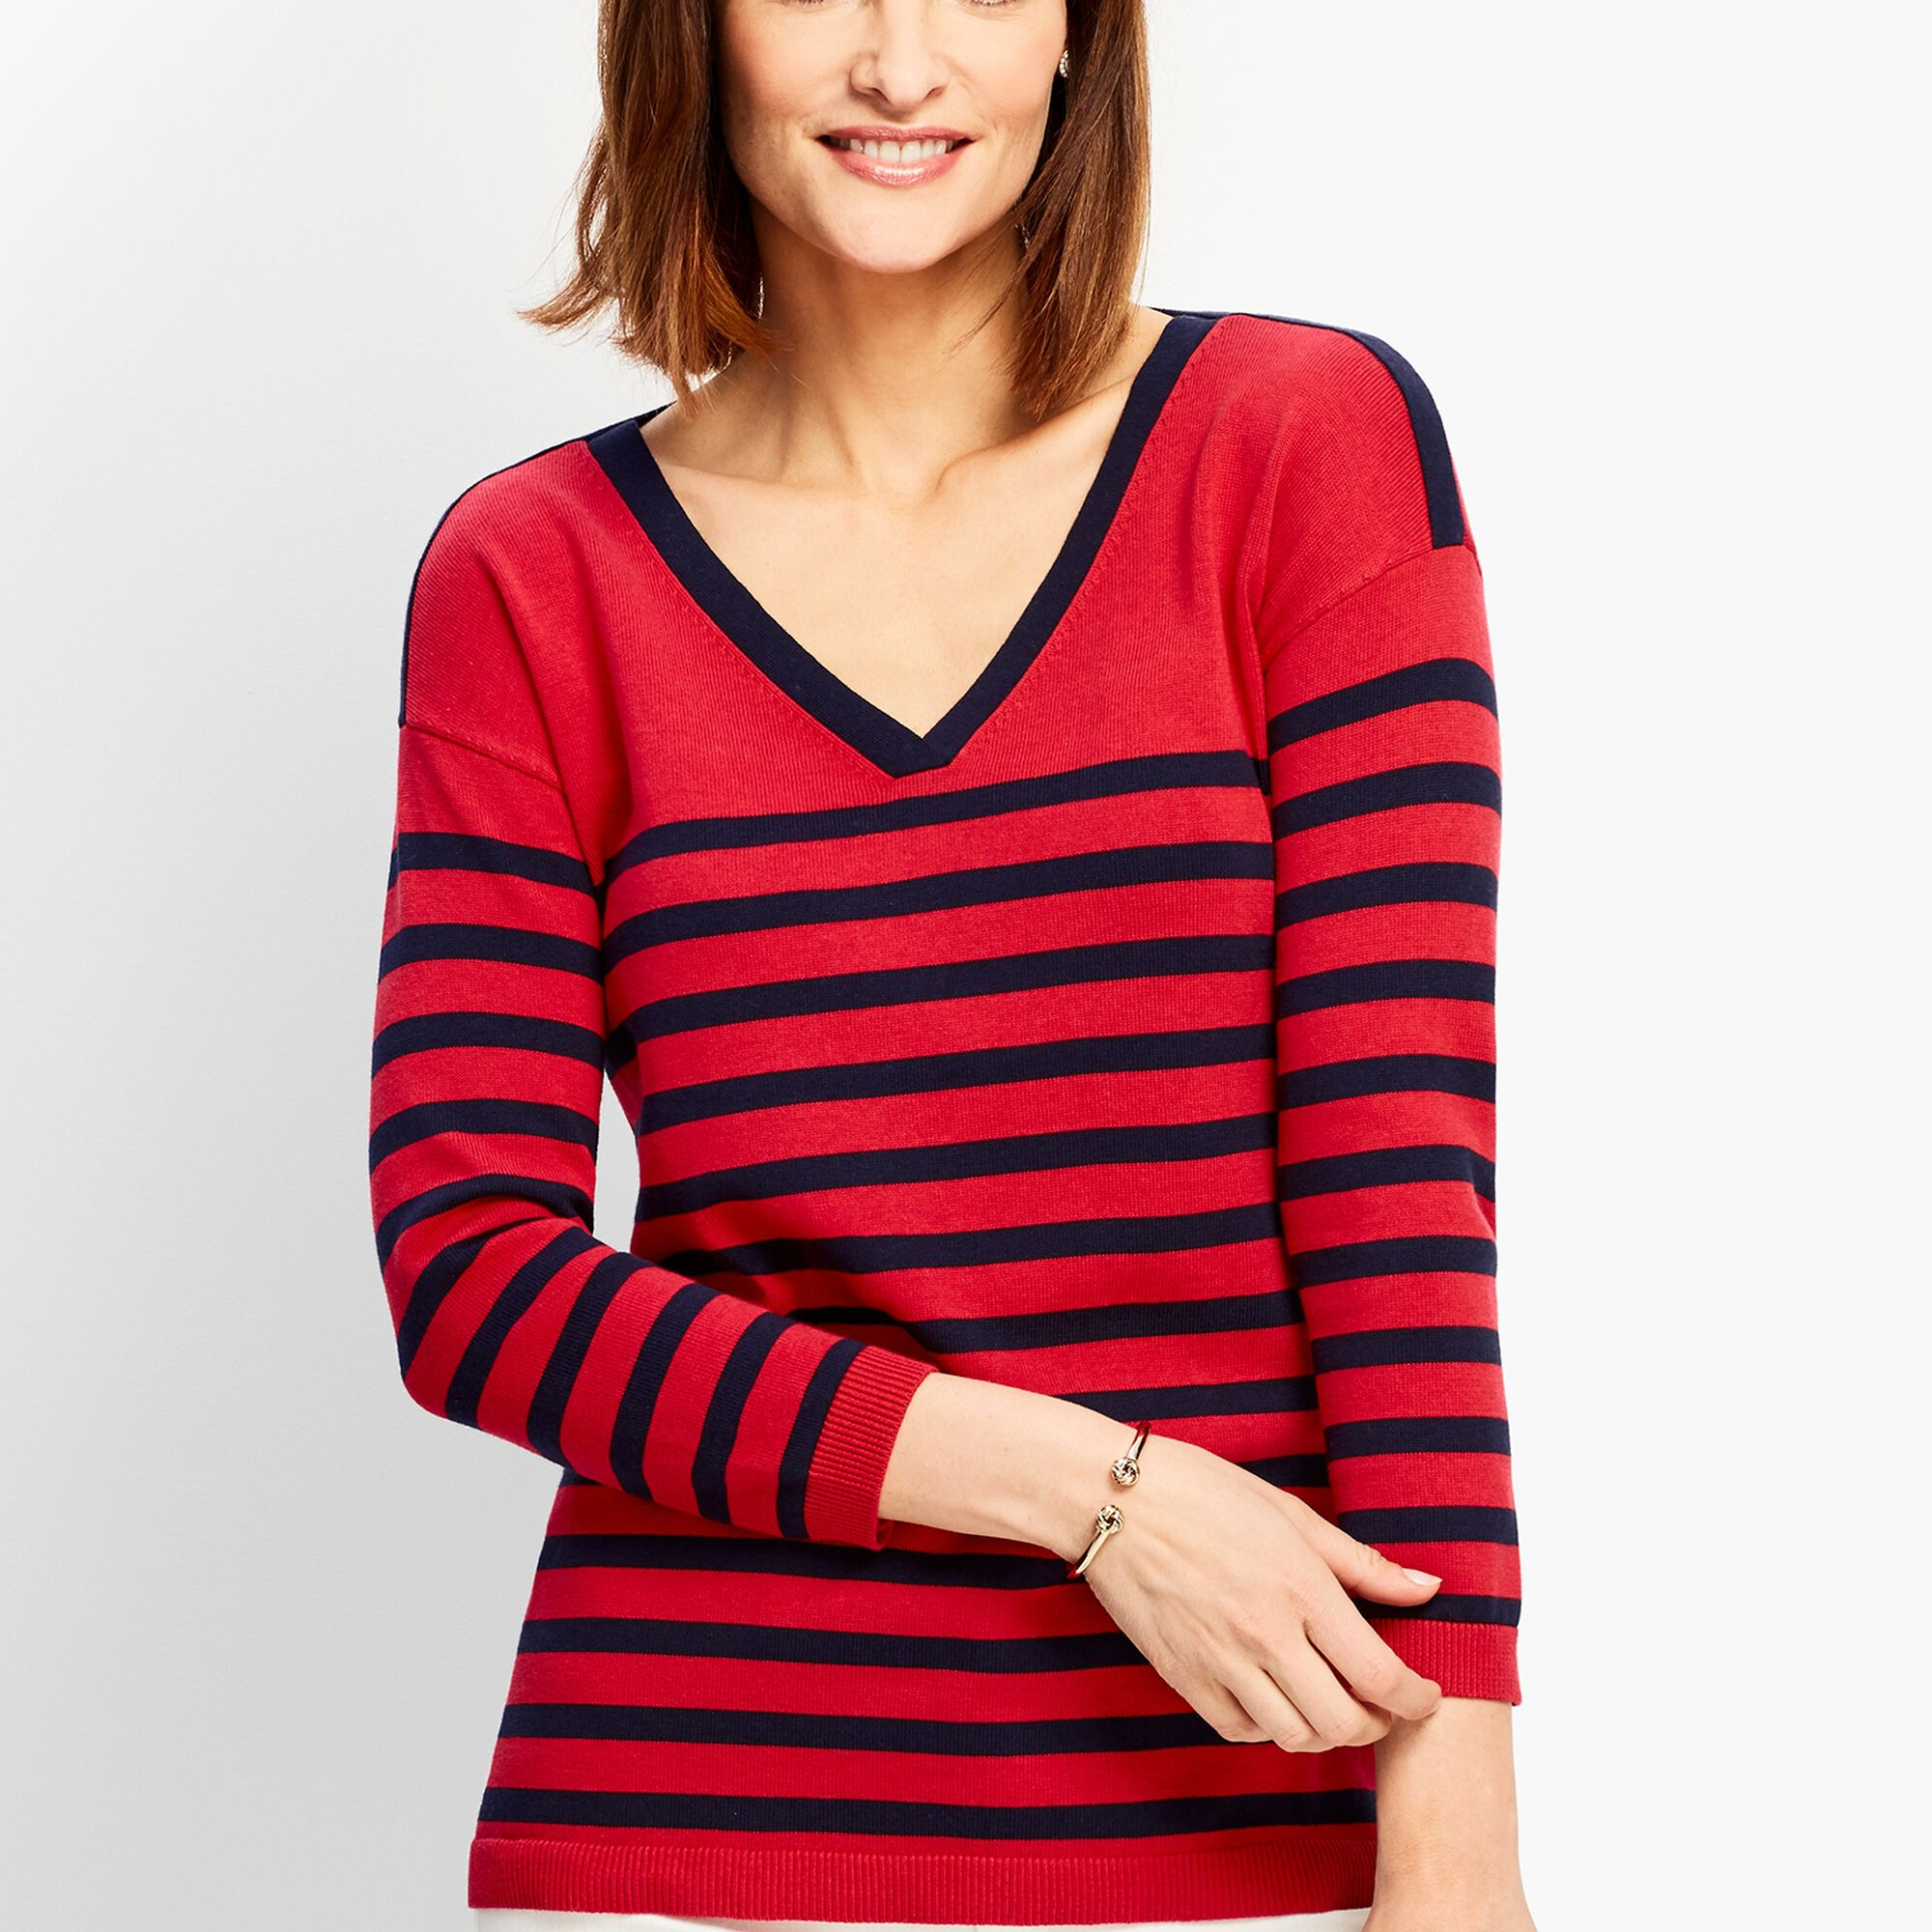 ca2c0601f2bf94 Mariner Stripe Sweater Opens a New Window.